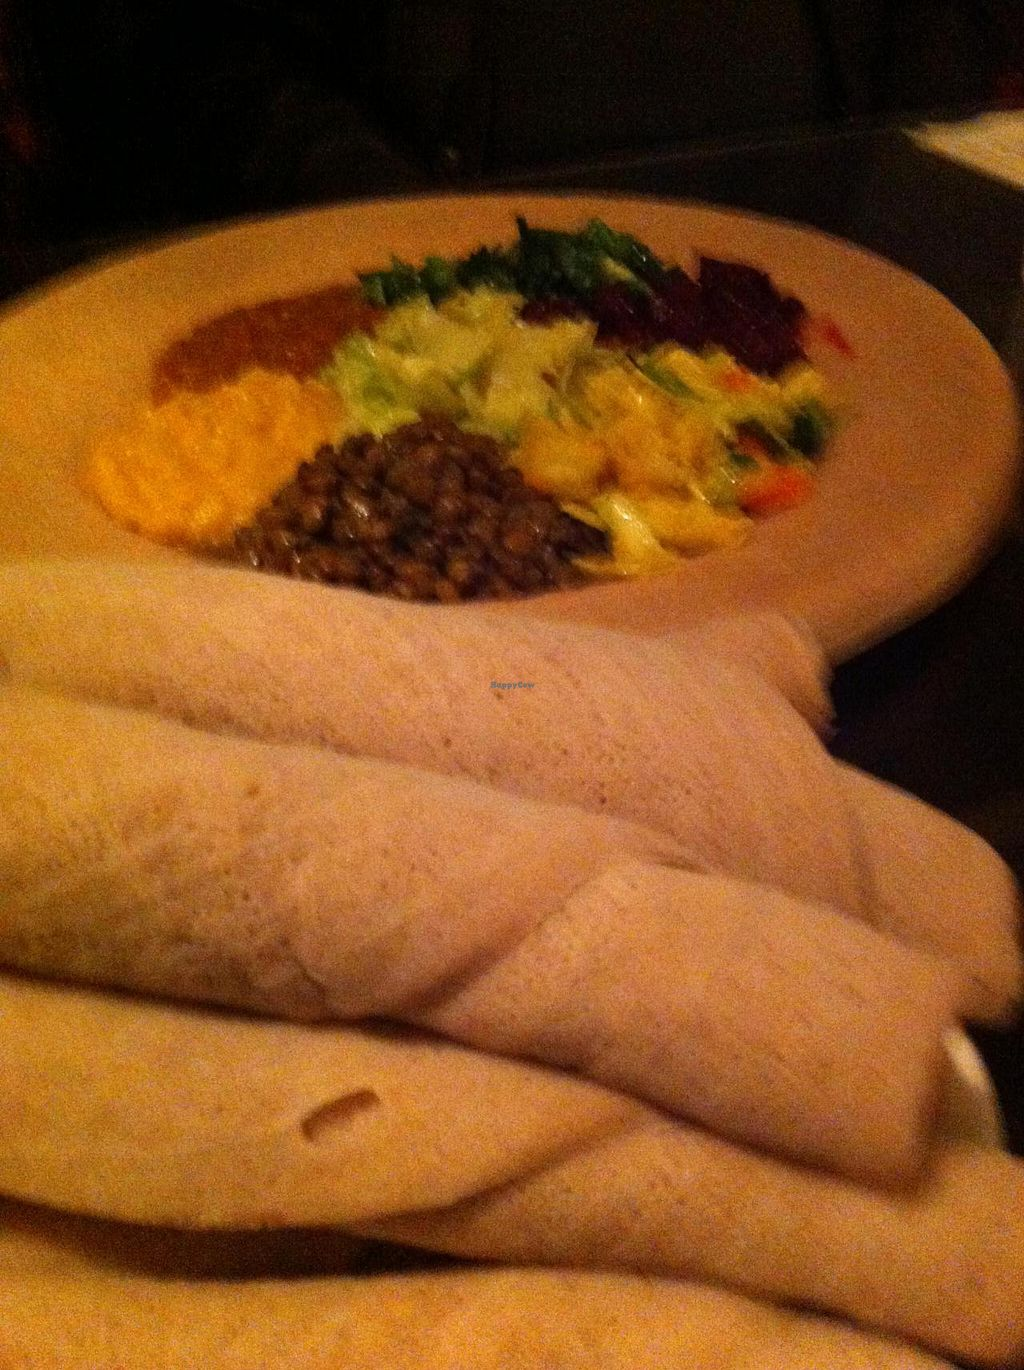 """Photo of Wass Ethiopian Restaurant  by <a href=""""/members/profile/gabynbrad"""">gabynbrad</a> <br/>Vegan Platter with injera <br/> May 4, 2014  - <a href='/contact/abuse/image/21508/69331'>Report</a>"""